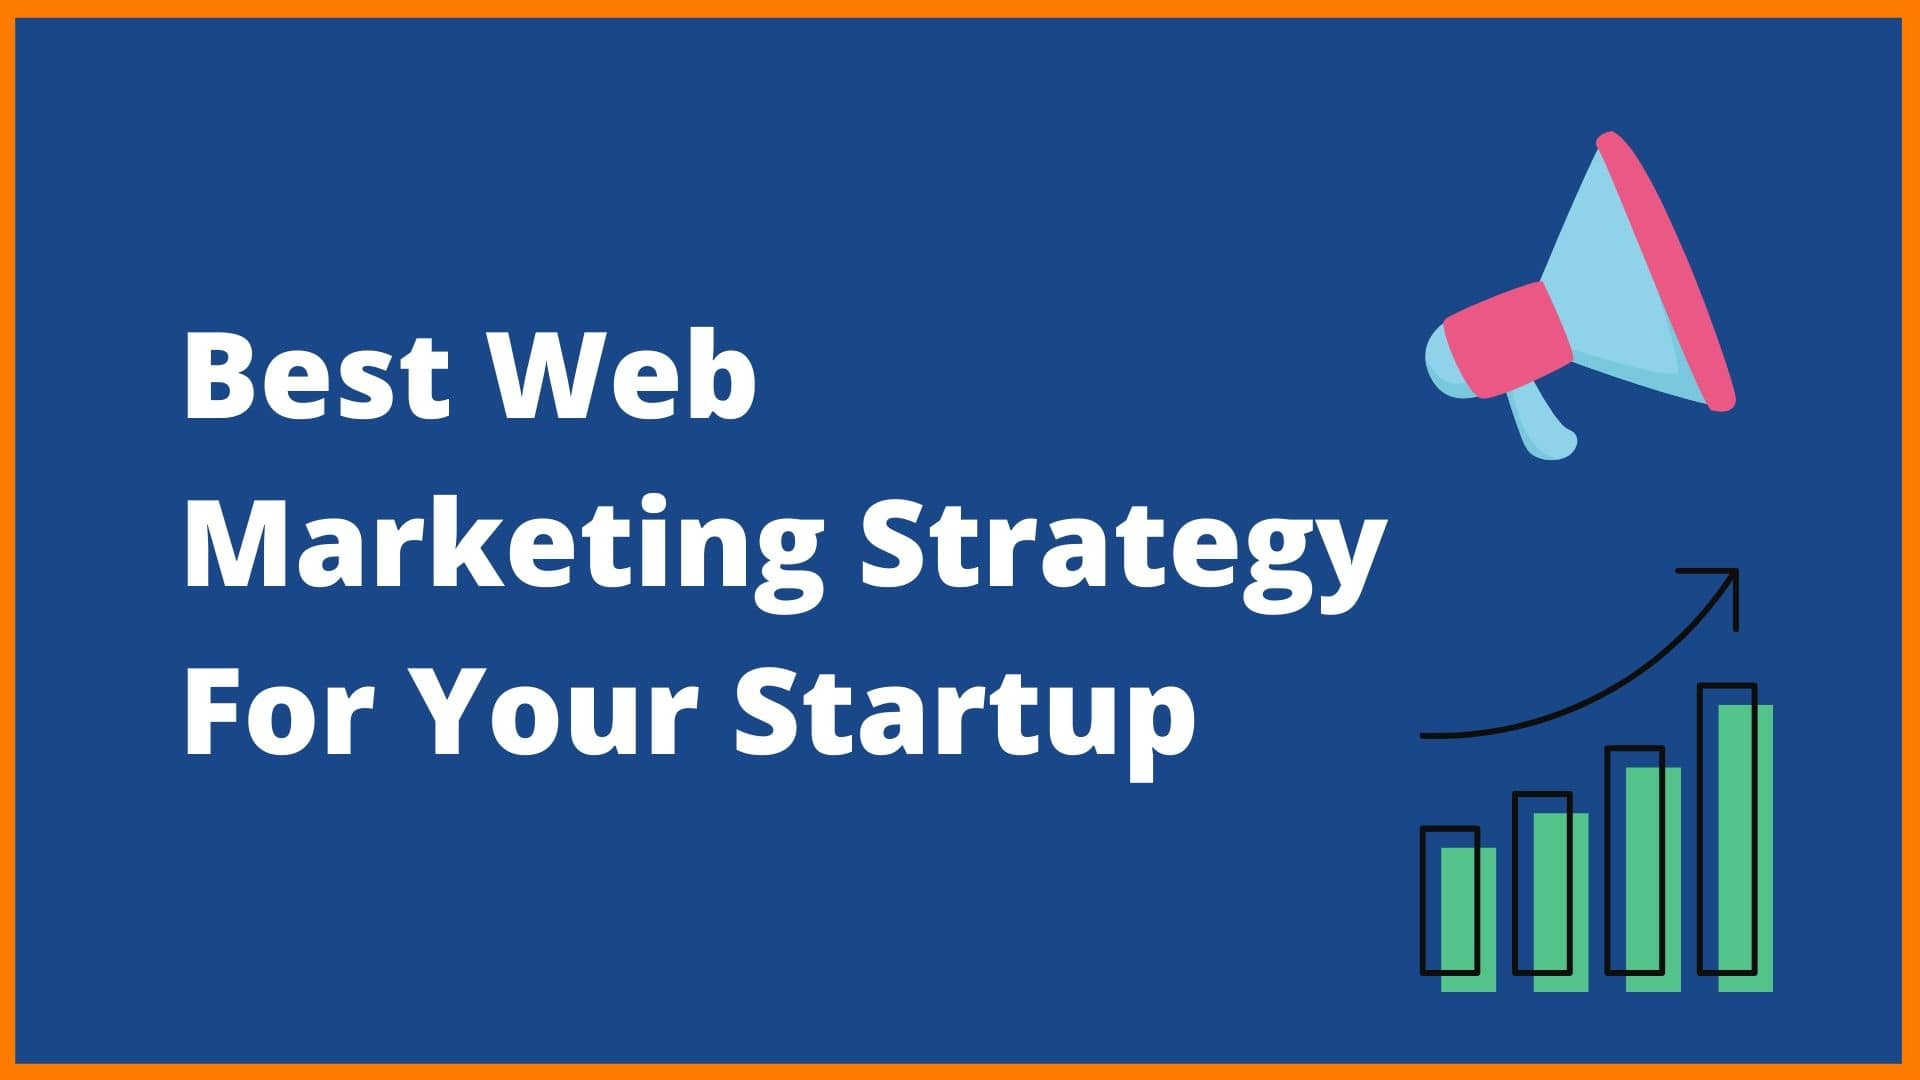 Best Web Marketing Strategy For Your Startup